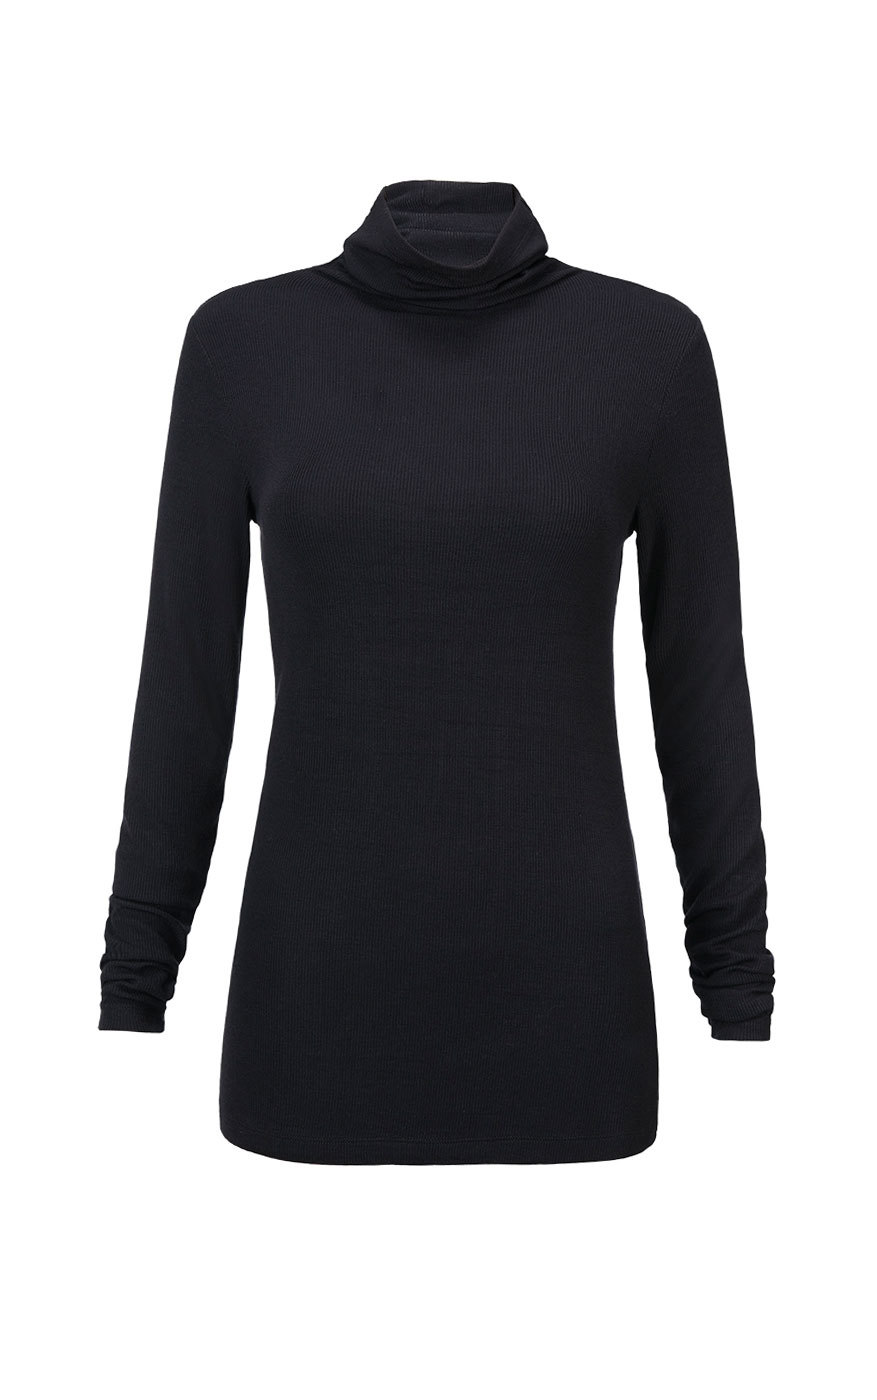 cabi's Turtleneck Tee